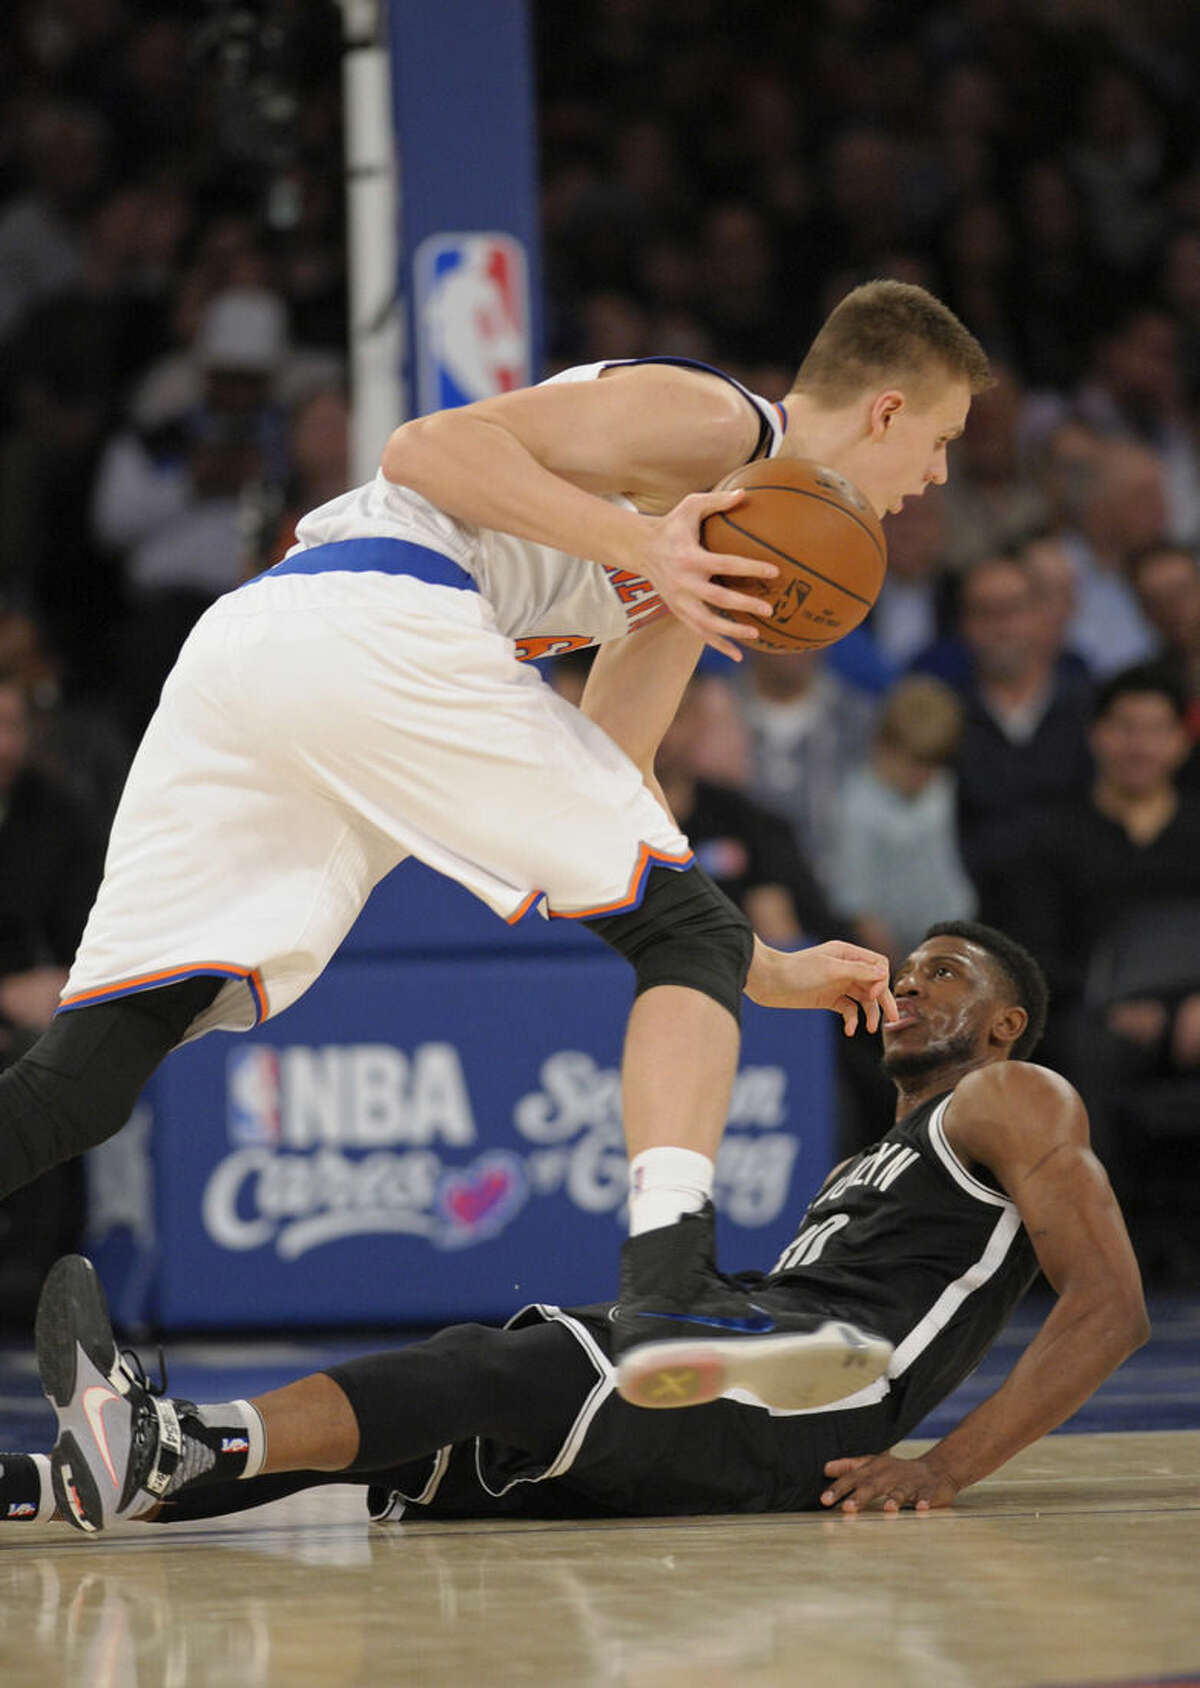 New York Knicks' forward Kristaps Porzingis, left, runs over Brooklyn Nets forward Thaddeus Young during the second quarter of an NBA basketball game Friday, Dec. 4, 2015, at Madison Square Garden in New York. (AP Photo/Bill Kostroun)